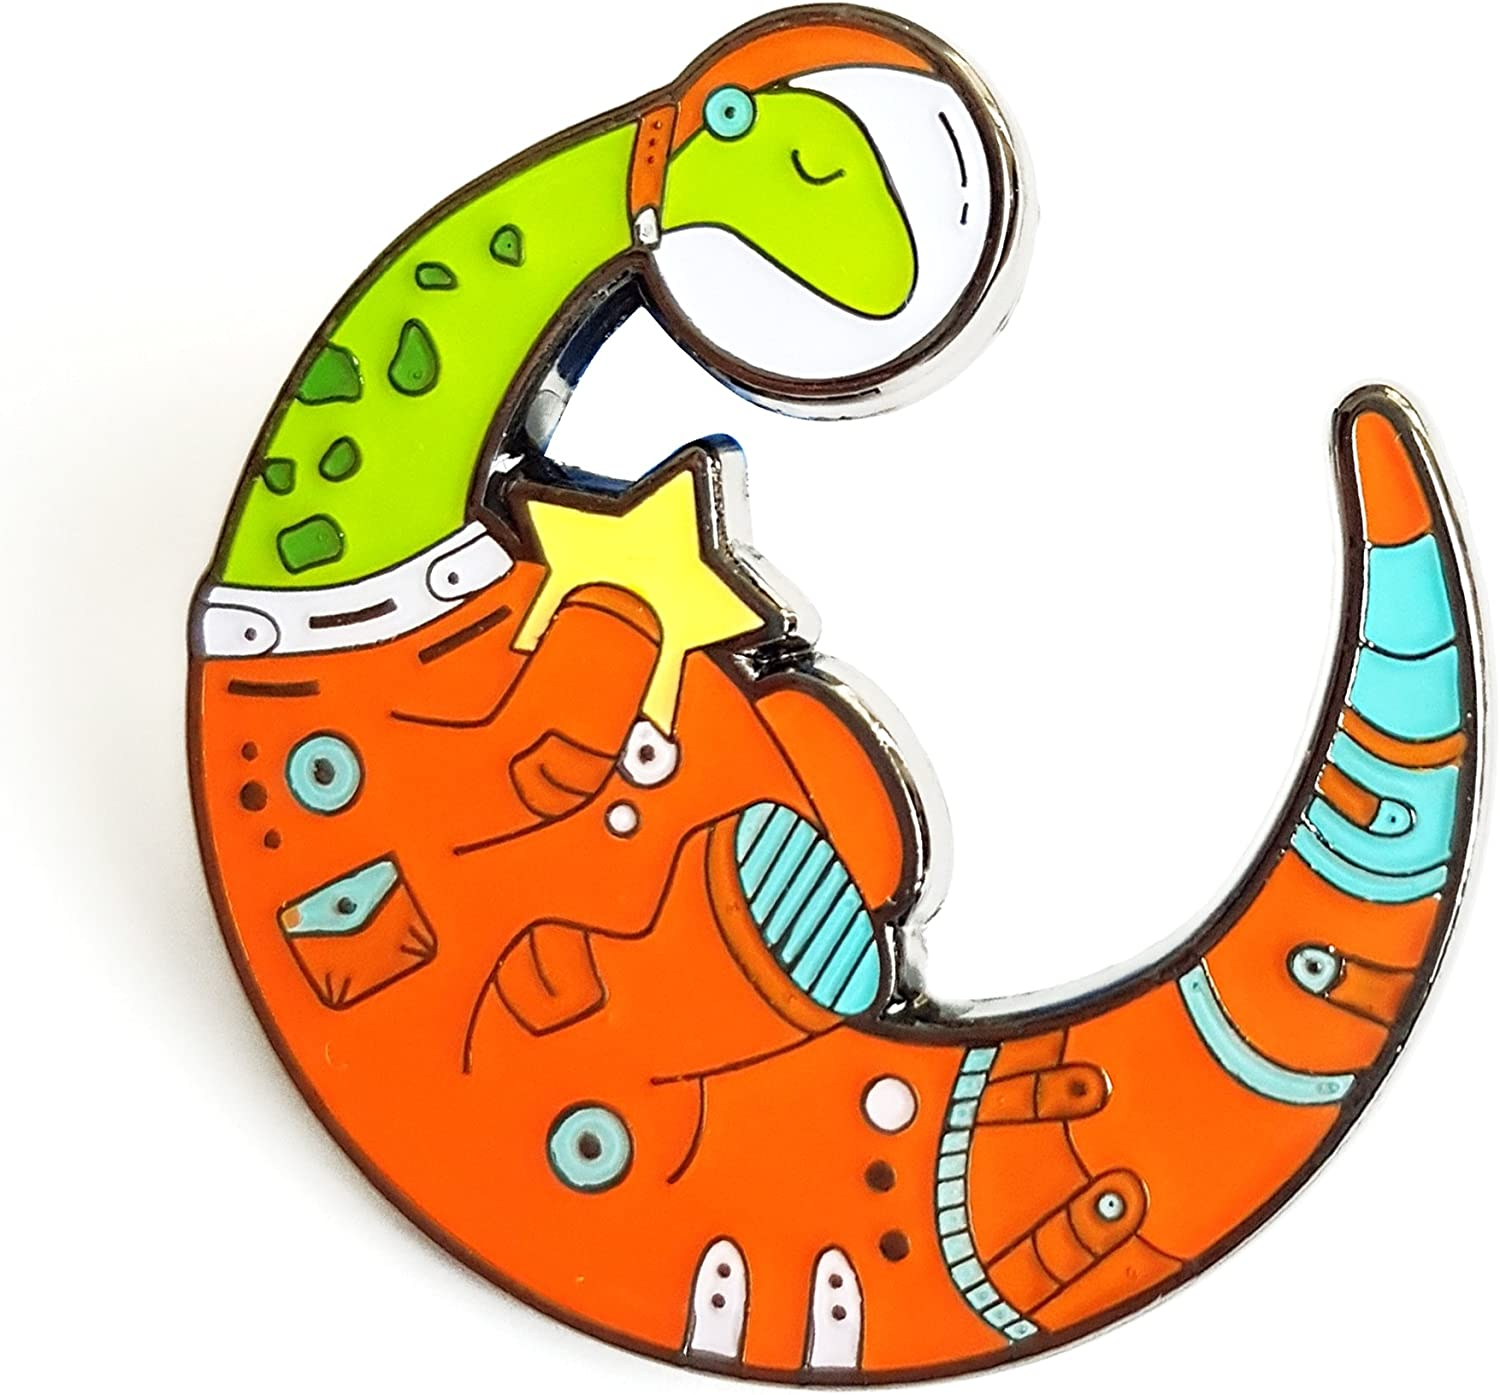 Dinosaur Lapel Pin Space In Credence a popularity Astronaut Suit Moon St Shaped Holding